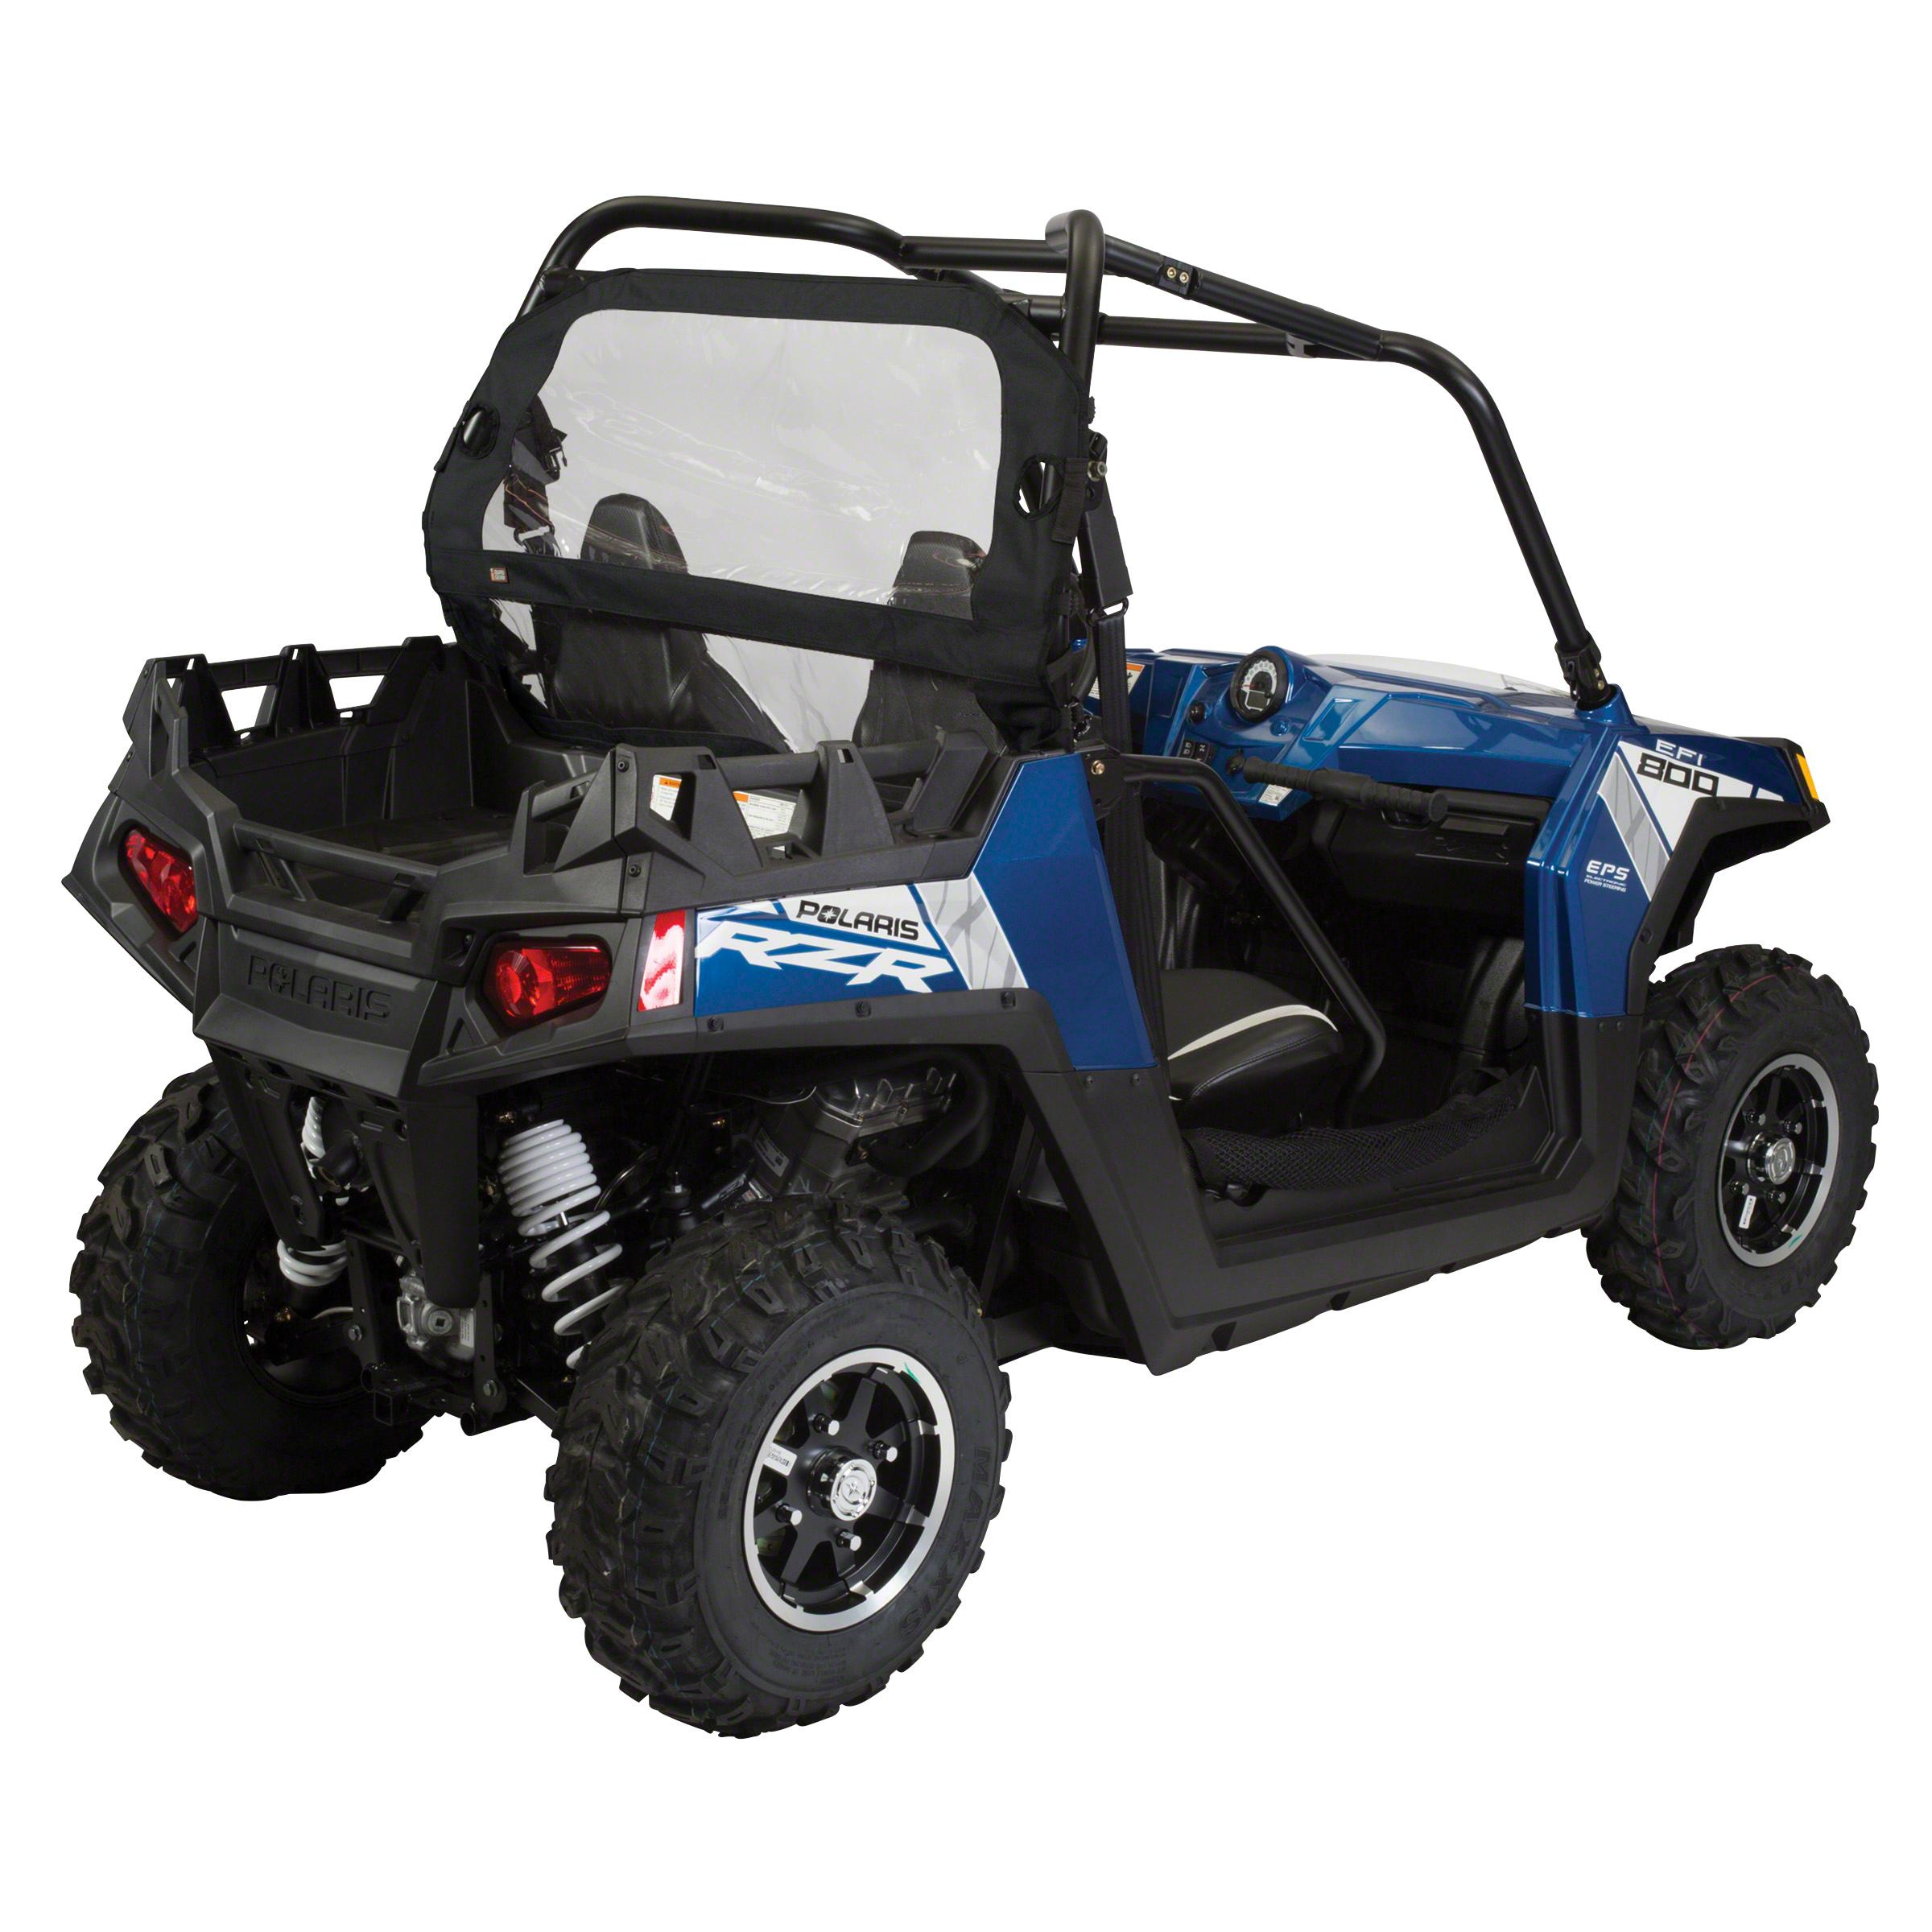 Fits Polaris RZR, RZR 4, 4 800, 570, 800, S 800, XP 4 900, XP 900 (2015  models and older)